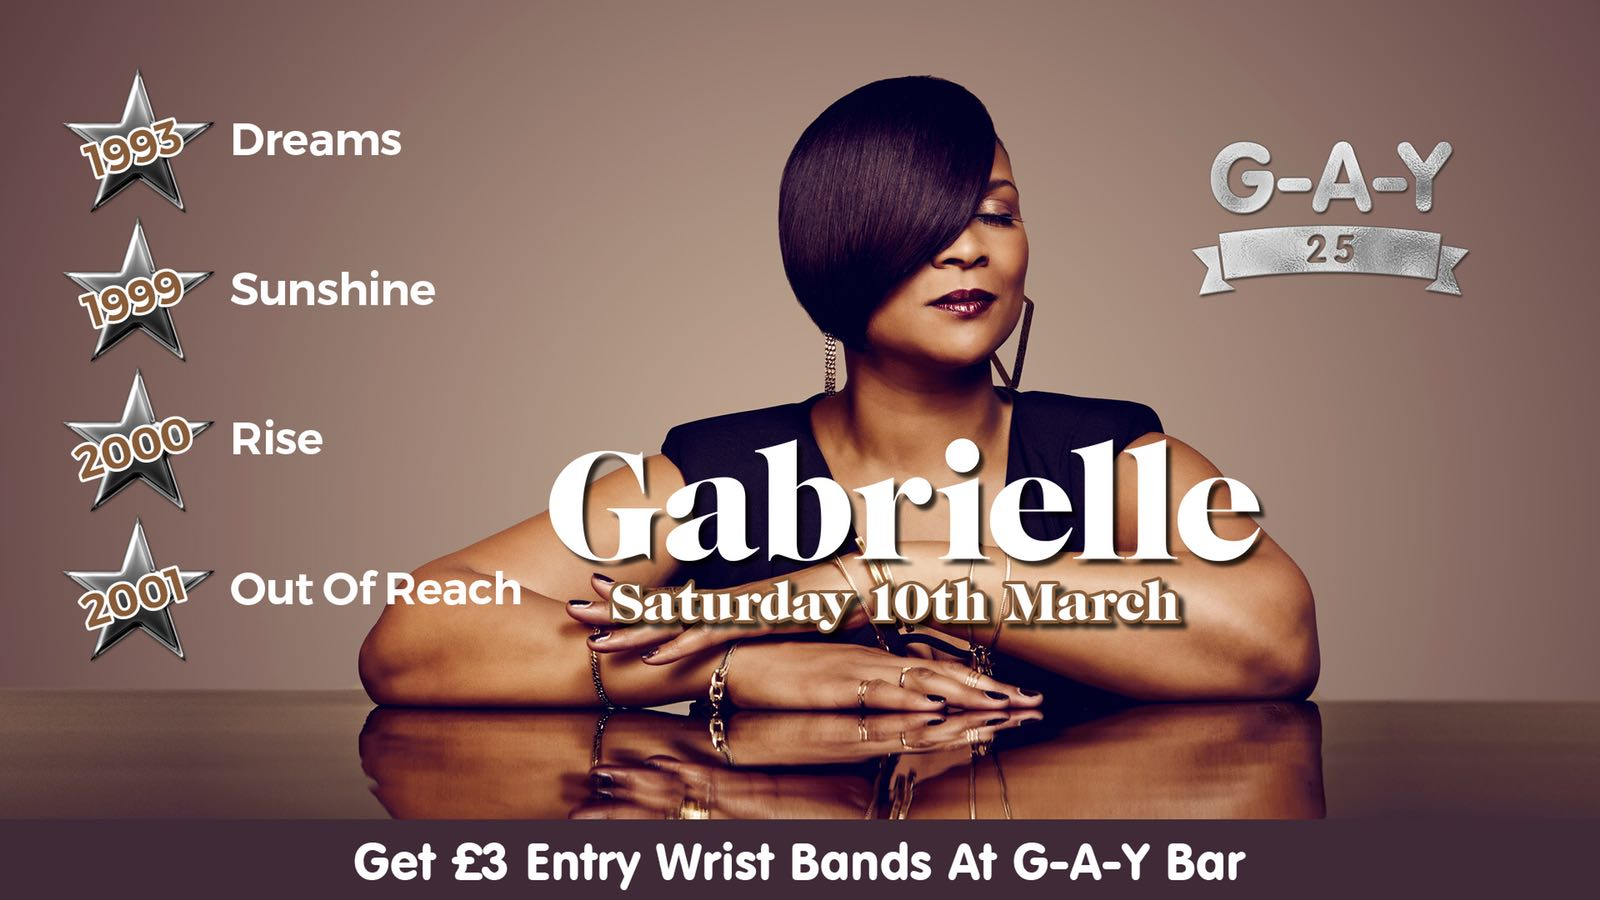 In Concert: G-A-Y Heaven 25 – March 10